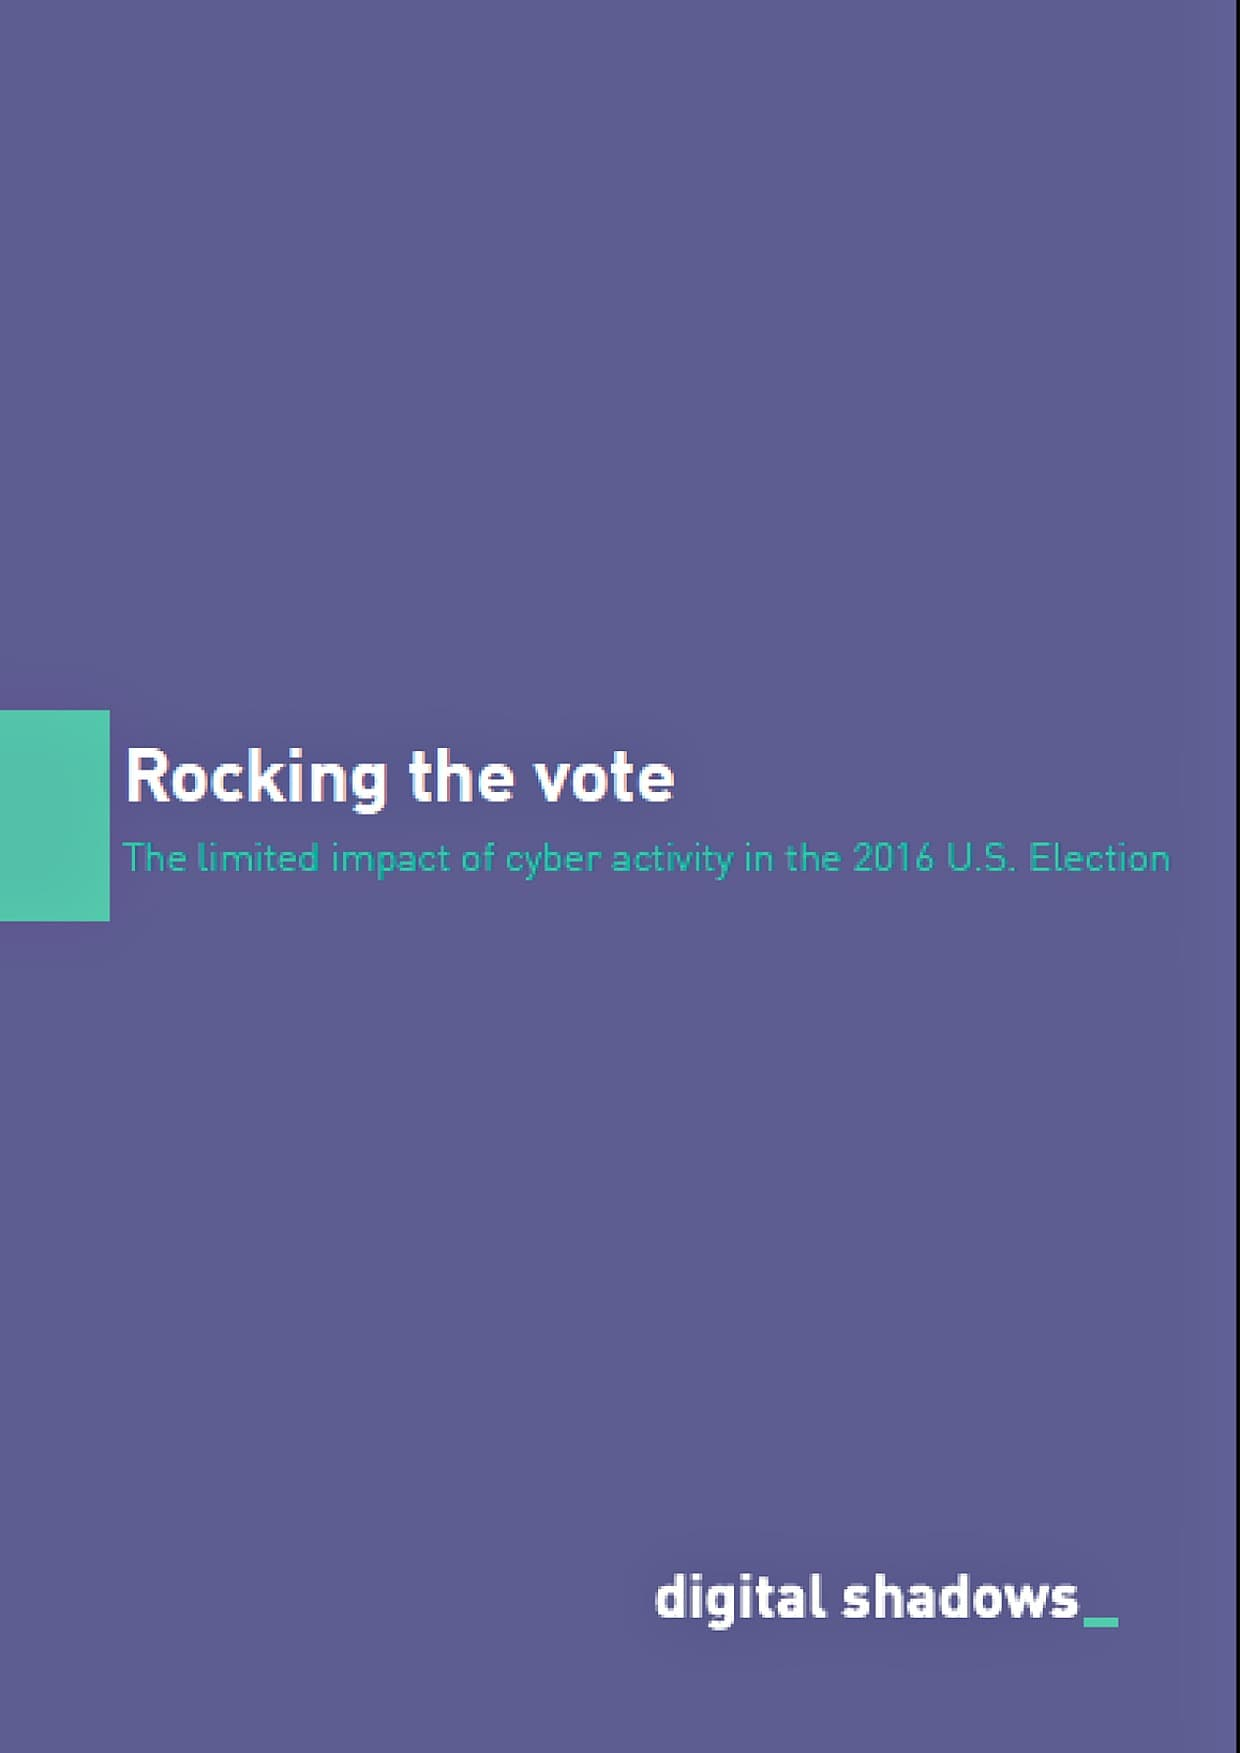 Rocking the Vote cover page min